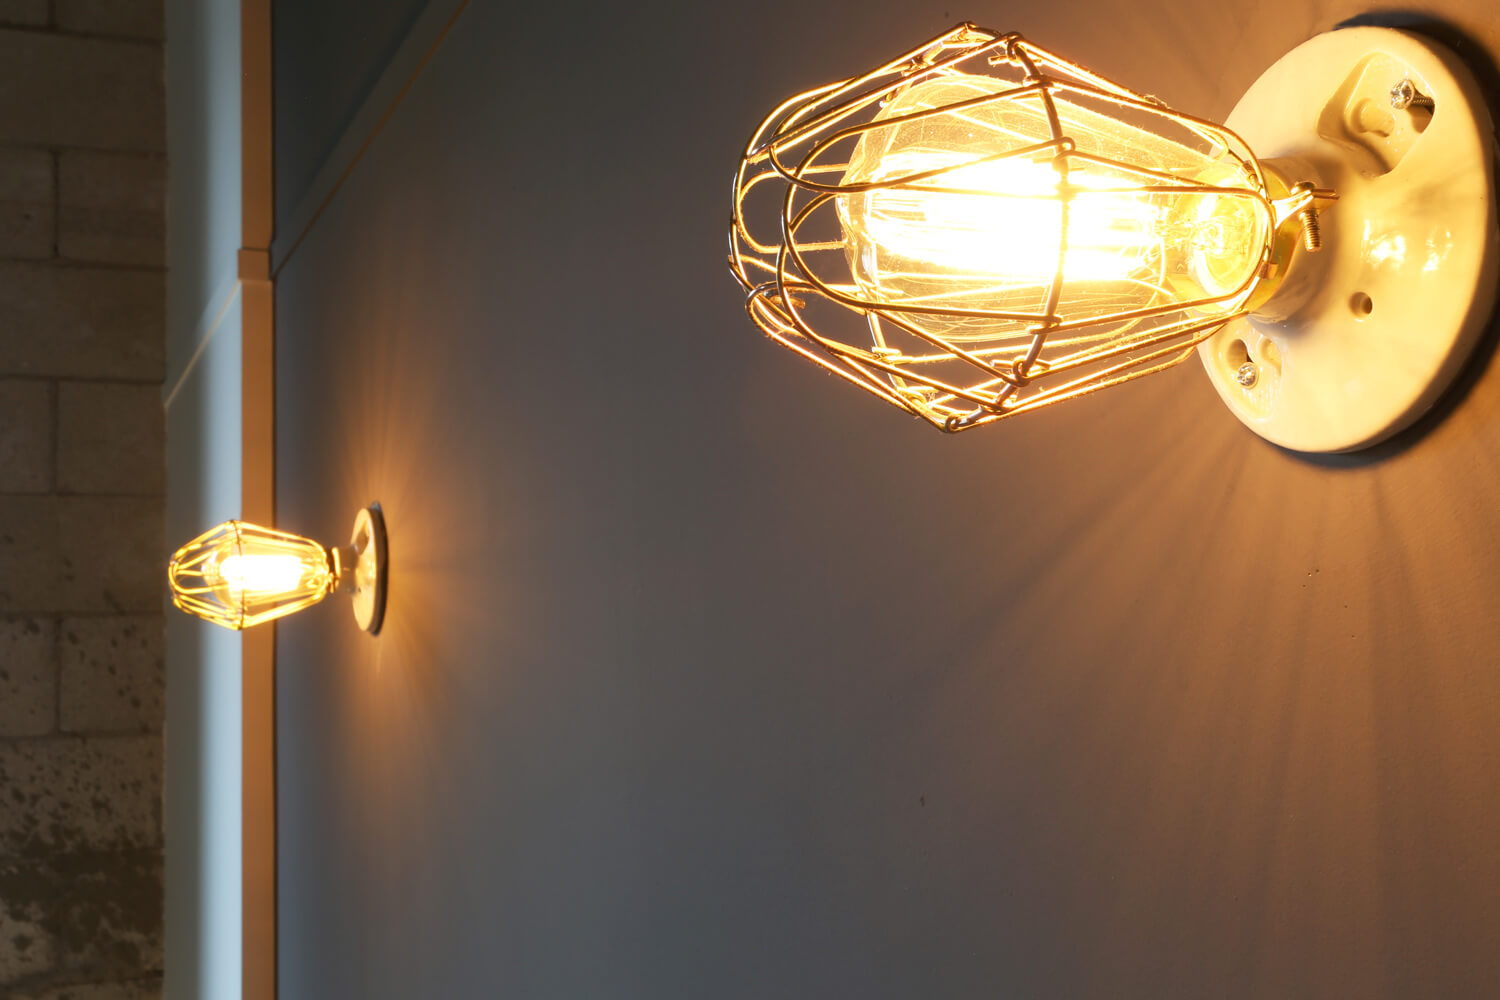 District 36 Lofts Designed by Foshee Architecture - Wall Sconce at Apartment